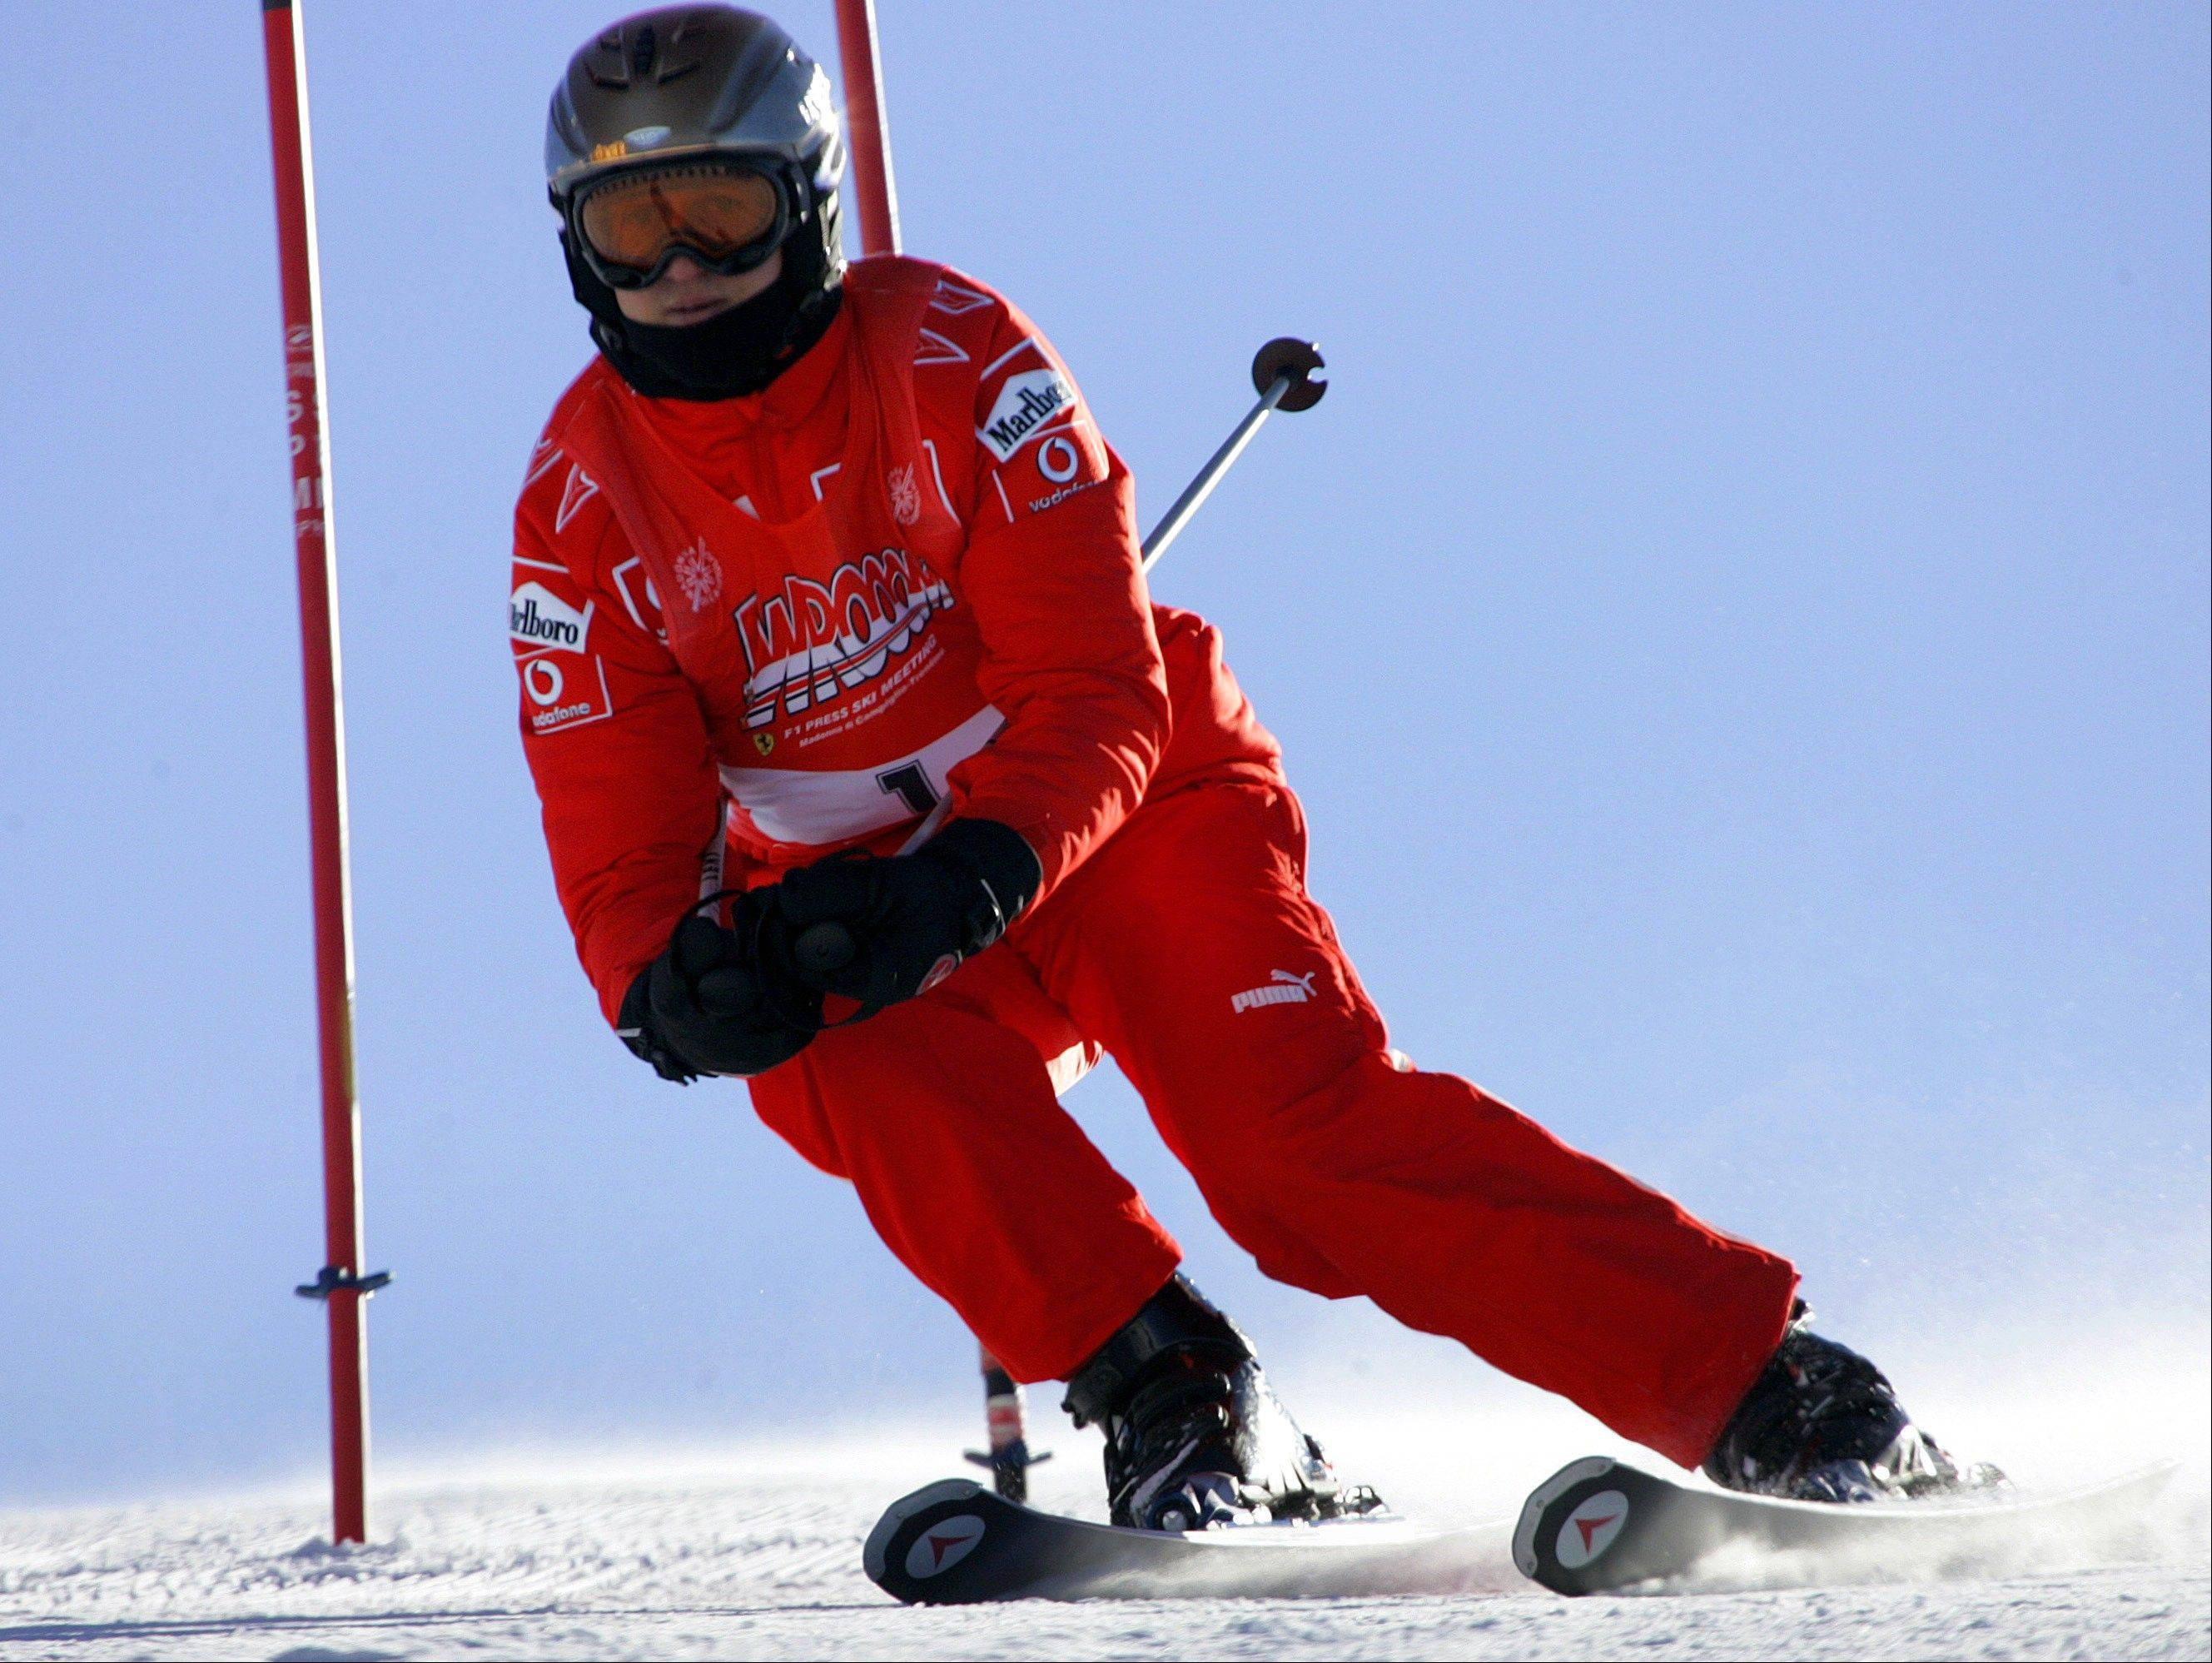 Two minutes of footage from a camera on Michael Schumacher's ski helmet showed the Formula One great was clearly skiing off a groomed trail when he lost his balance and crashed, leaving him with critical head injuries, investigators said Wednesday Jan. 8, 2014.